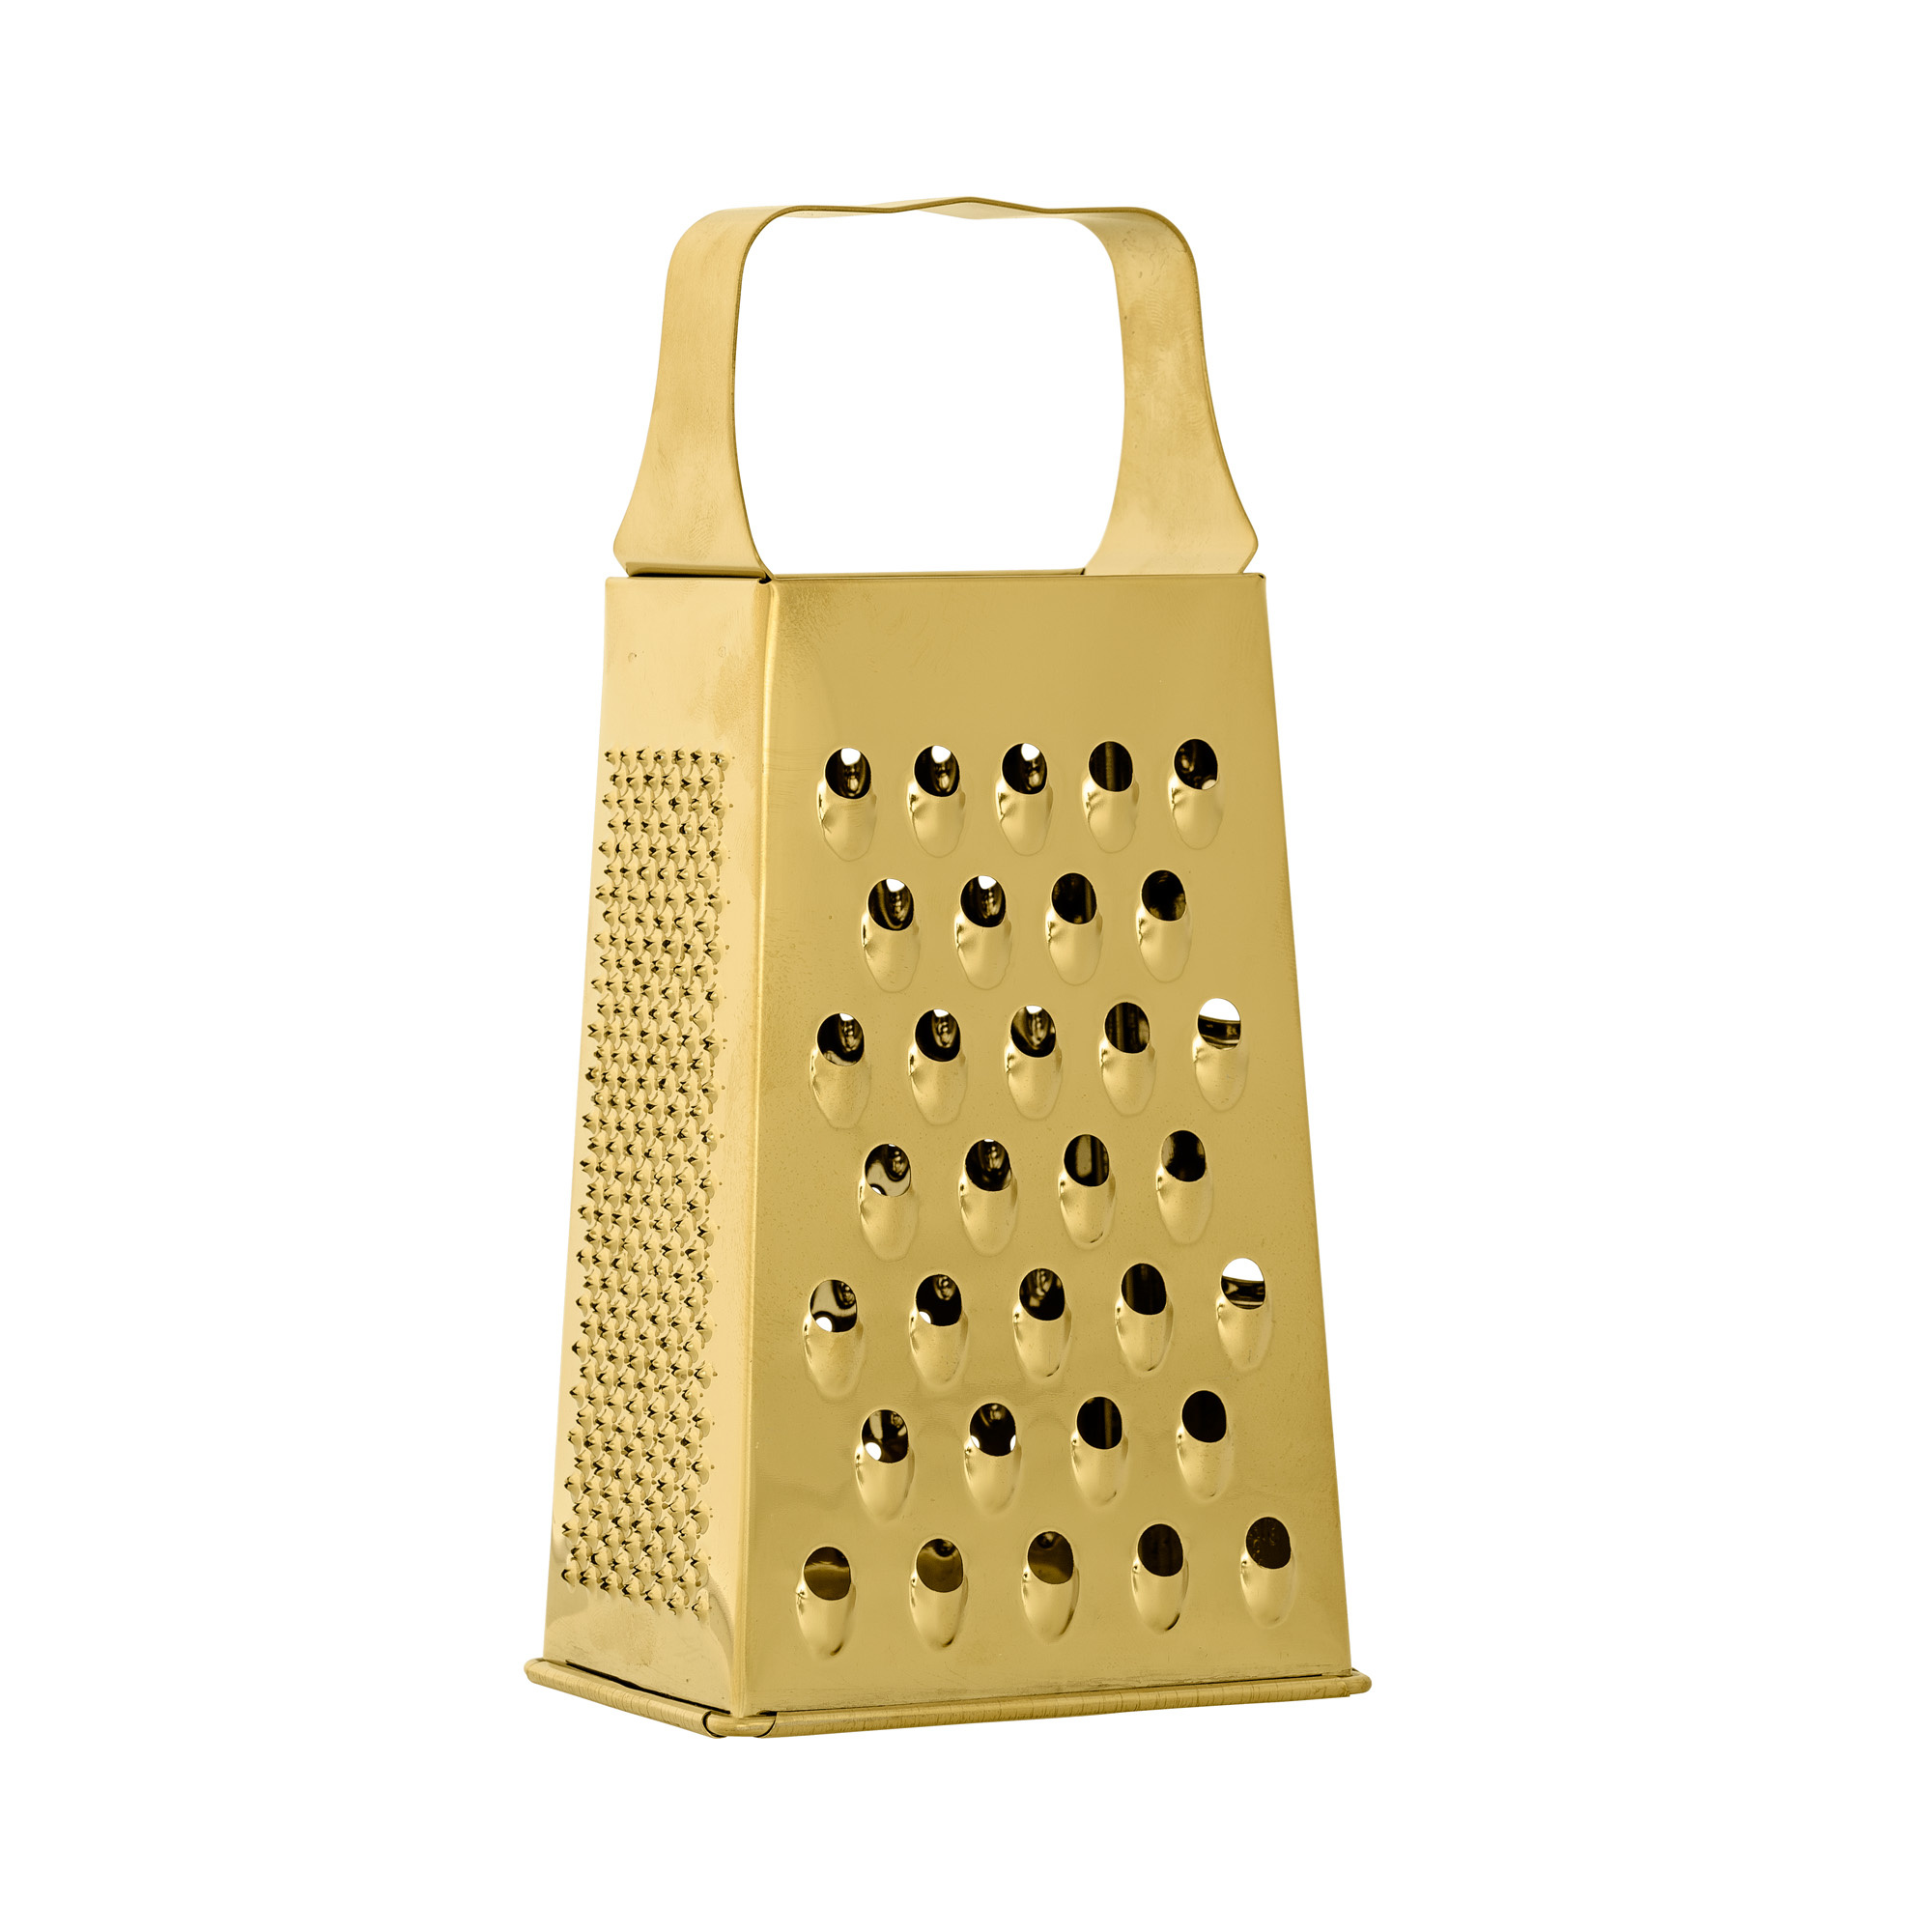 Bloomingville Grater, Gold, Stainless Steel - Bloomingville